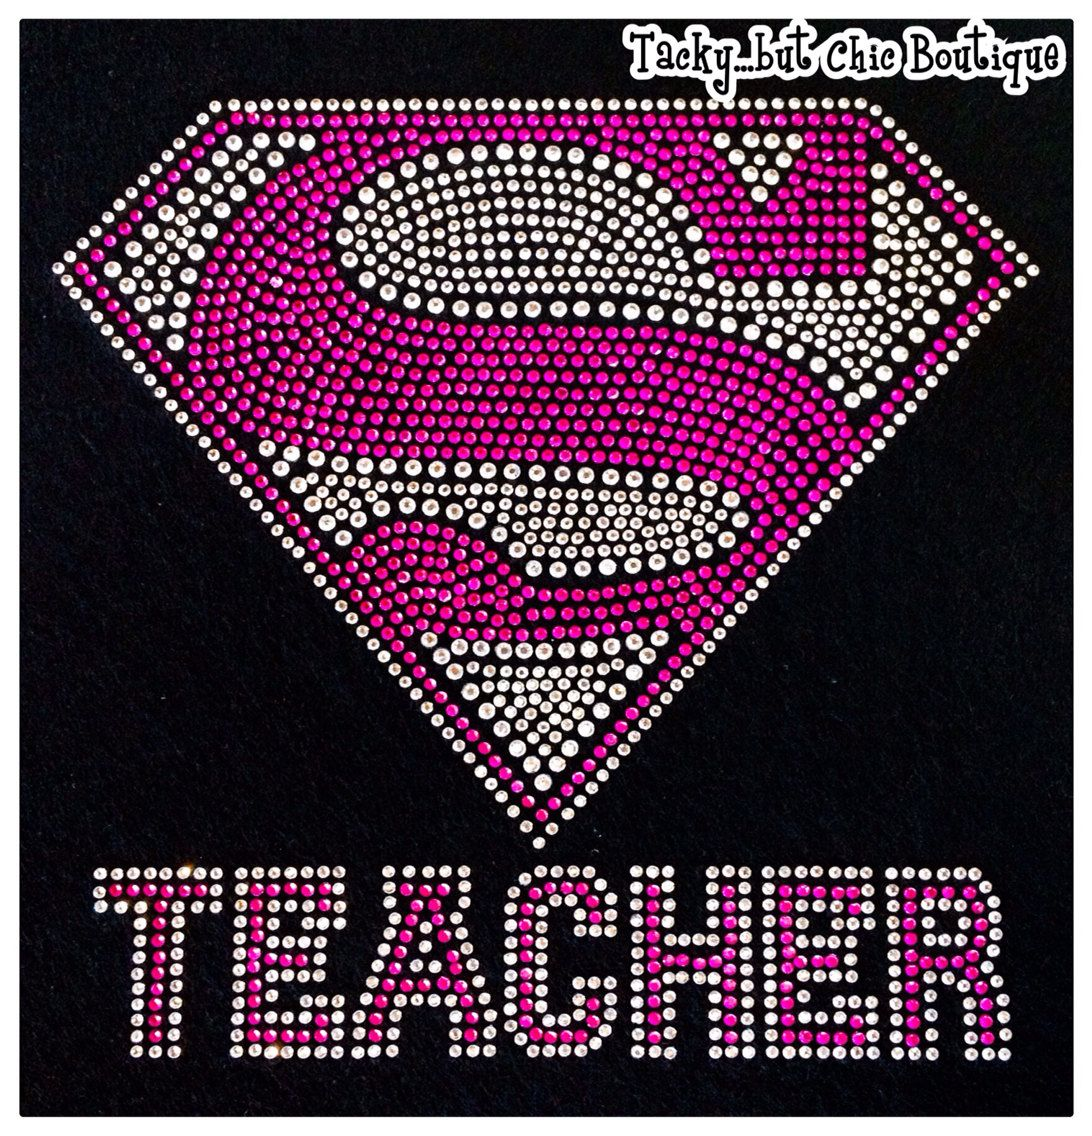 Super Teacher Bling Shirt By Tackybutchicboutique On Etsy